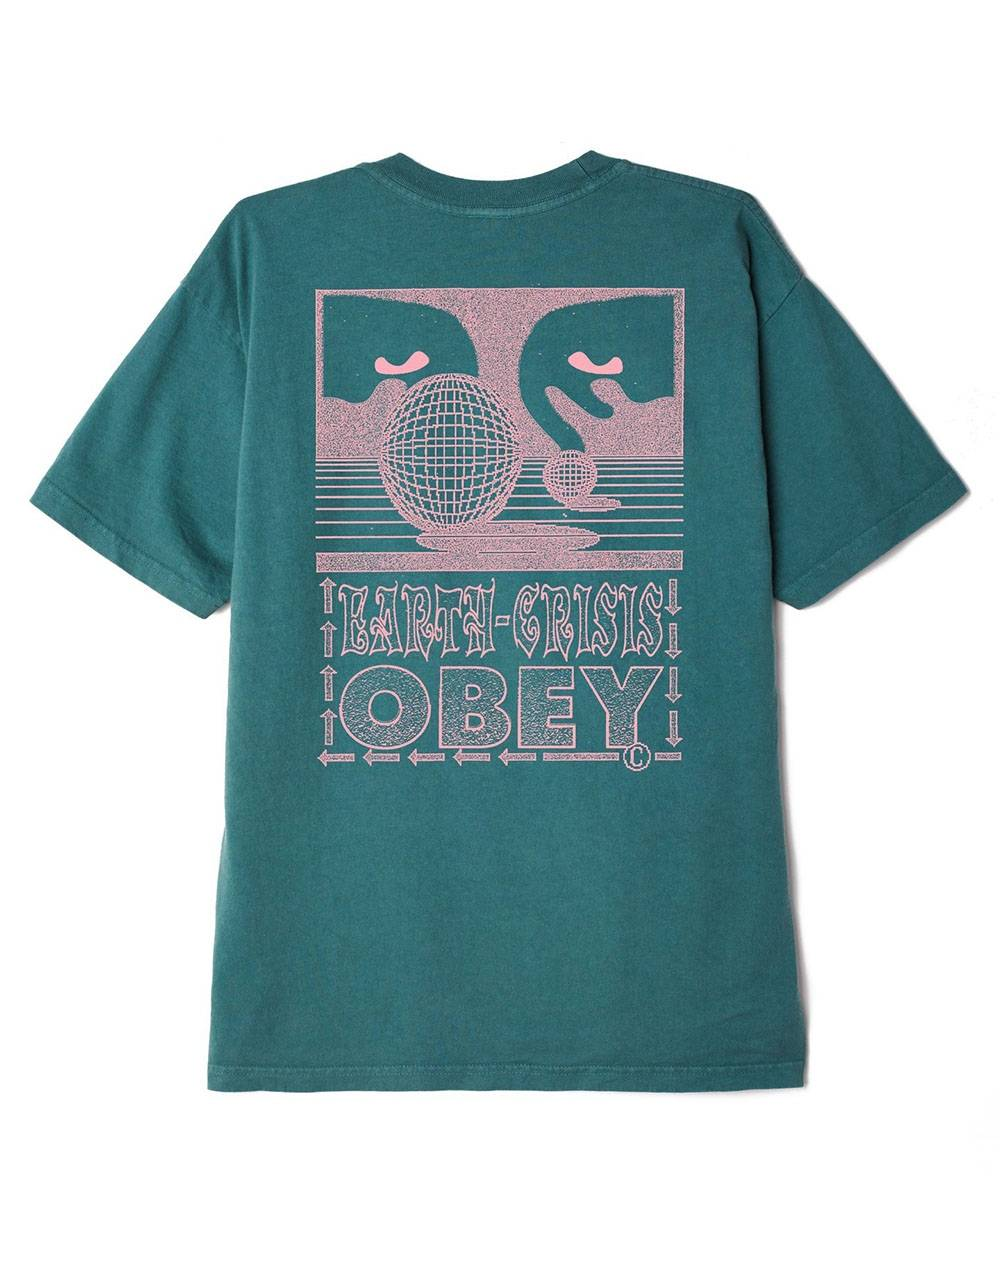 Obey Earth crisis heavyweight box fit t-shirt - velvet pine obey T-shirt 45,08€